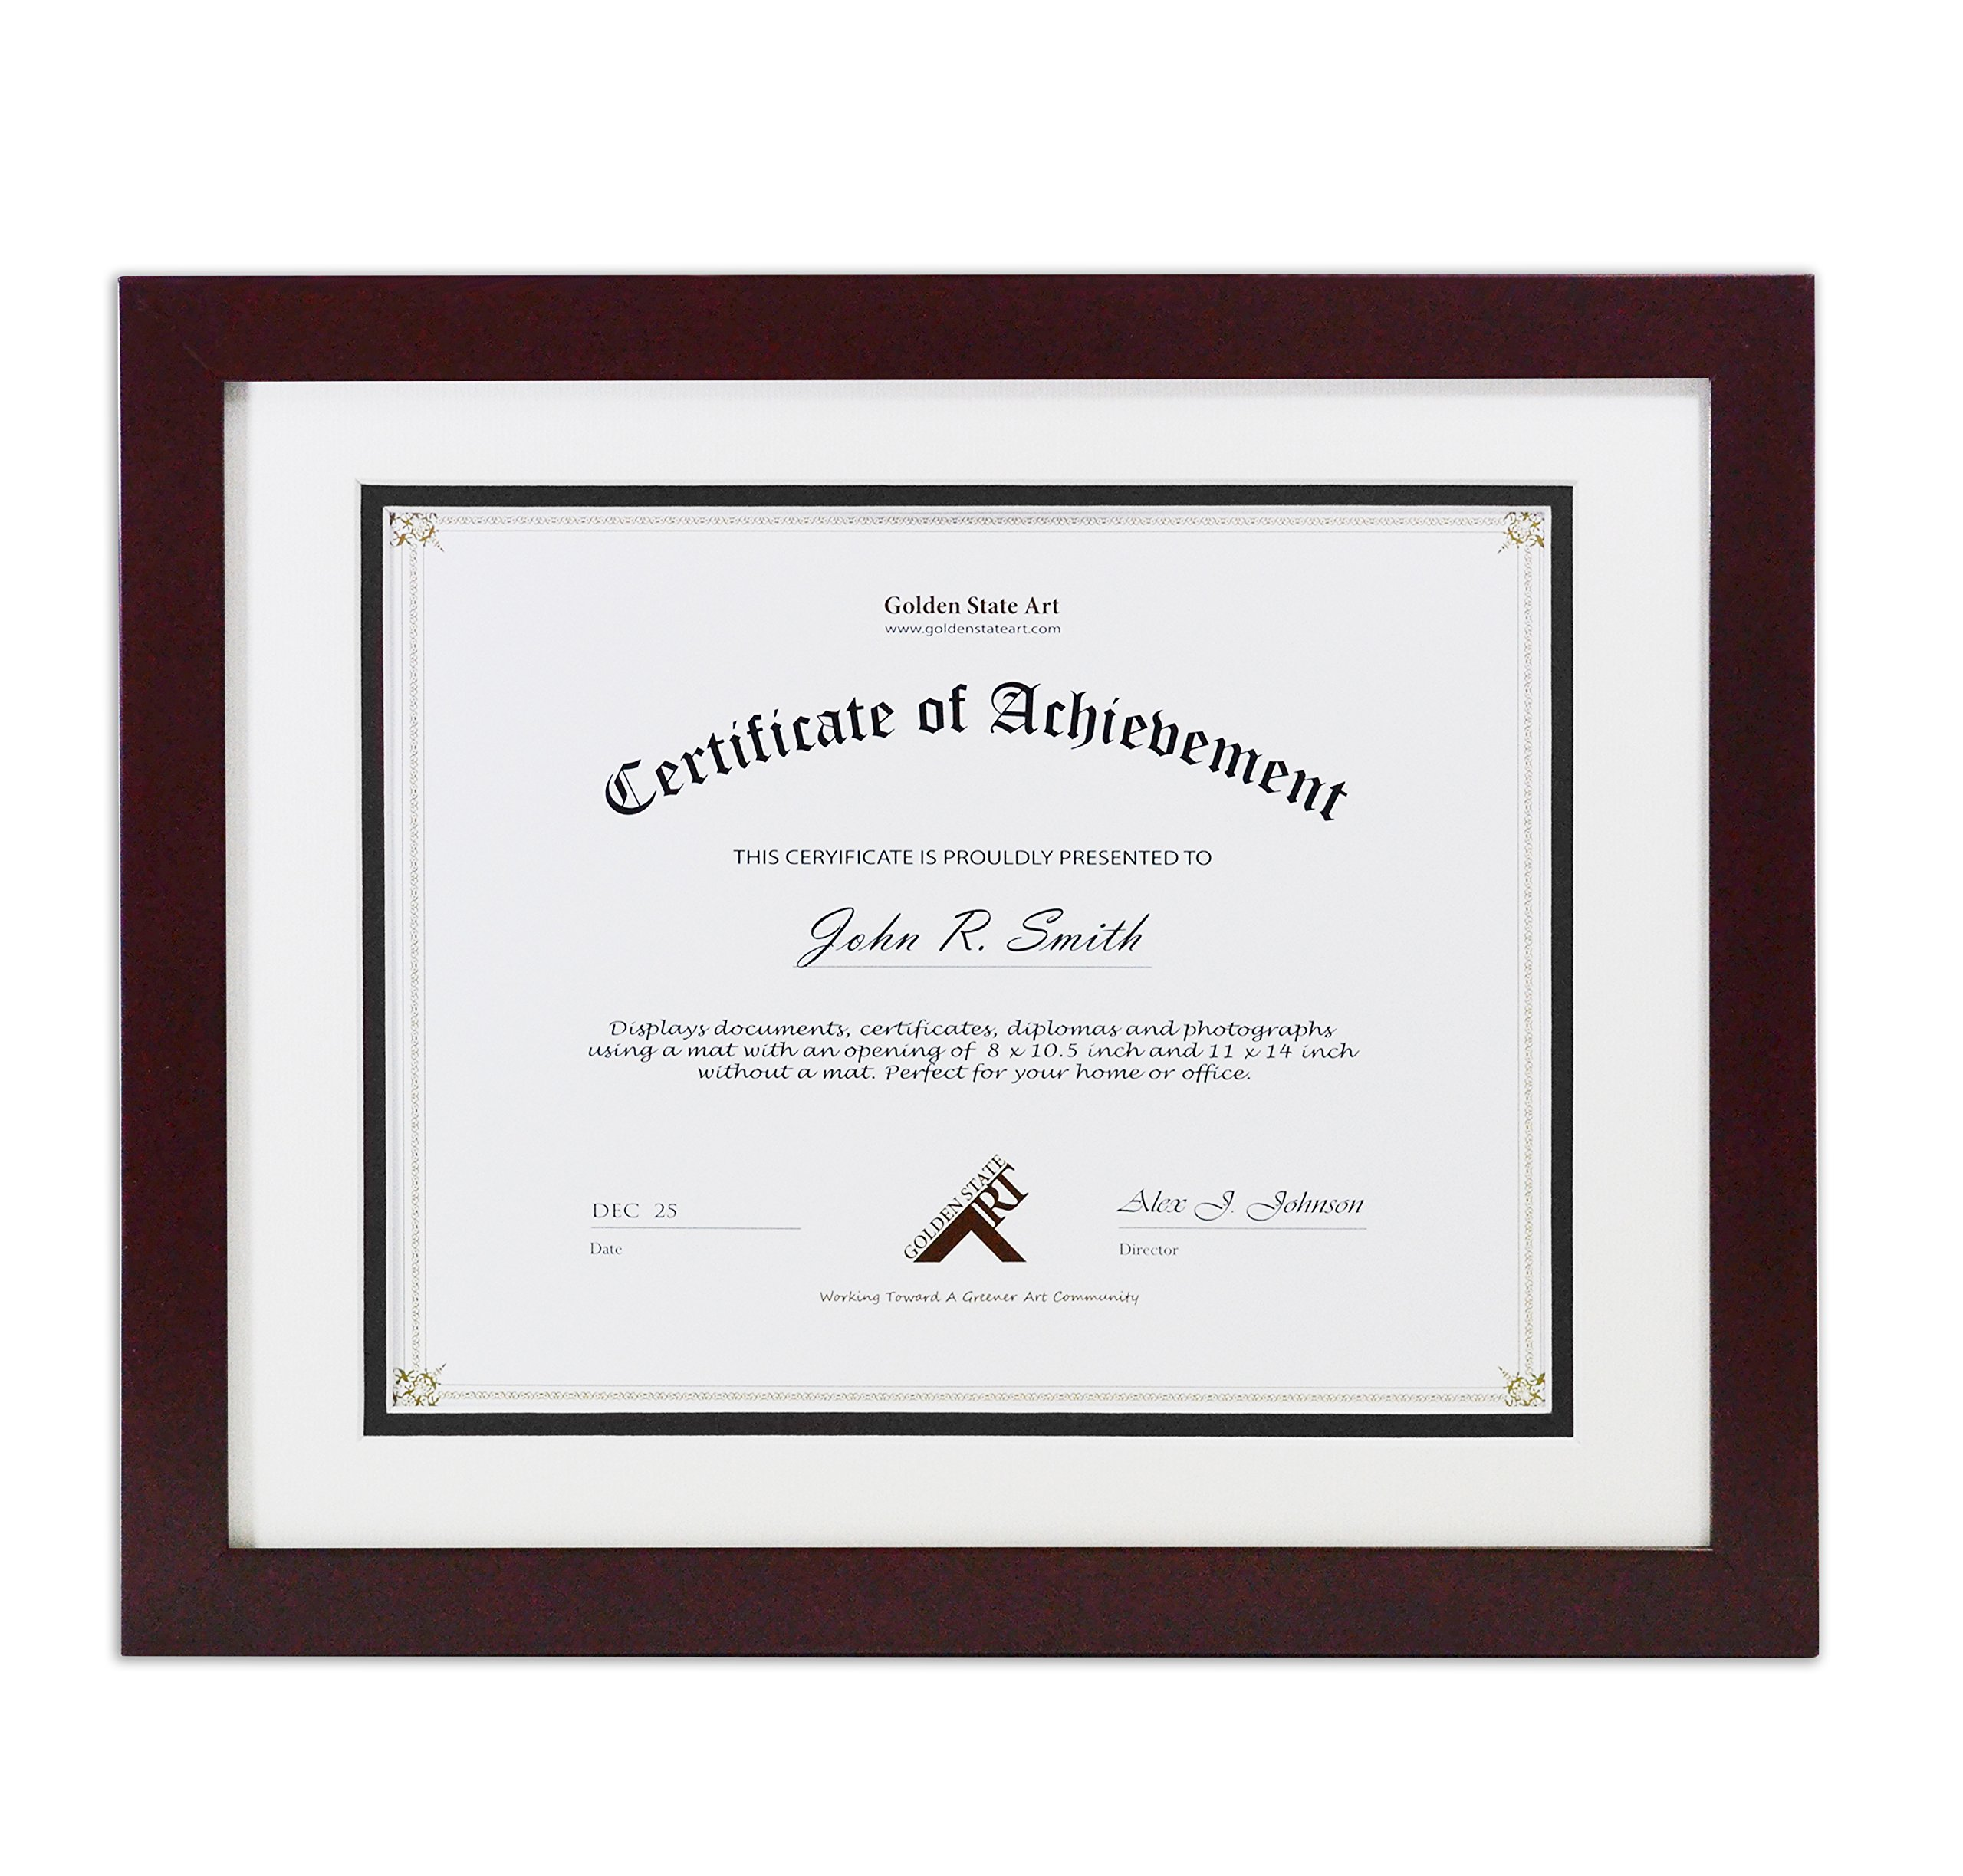 Golden State Art, Document/Photo Wood Frame for Document & Certificates, Real Glass (11x14 Frame for 8.5x11, Mahogany… - Certificate, Document, Photo Wood Frame with outside frame size 12.5x15.5 inches. The frame can fit pictures/documents 11x14 (without Mat) Or 8.5 x 11.5 (with Mat). Includes a White Core Double Mat. Color: White/Black with opening size: 8 x 10.5 - picture-frames, bedroom-decor, bedroom - 91IW5Lii9QL -